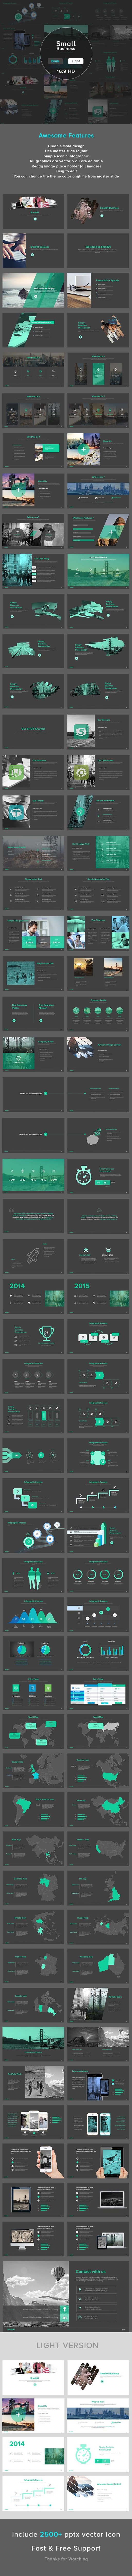 Small Business PowerPoint Presentation Template. Download here: https://graphicriver.net/item/small-business-presentation/17128568?ref=ksioks